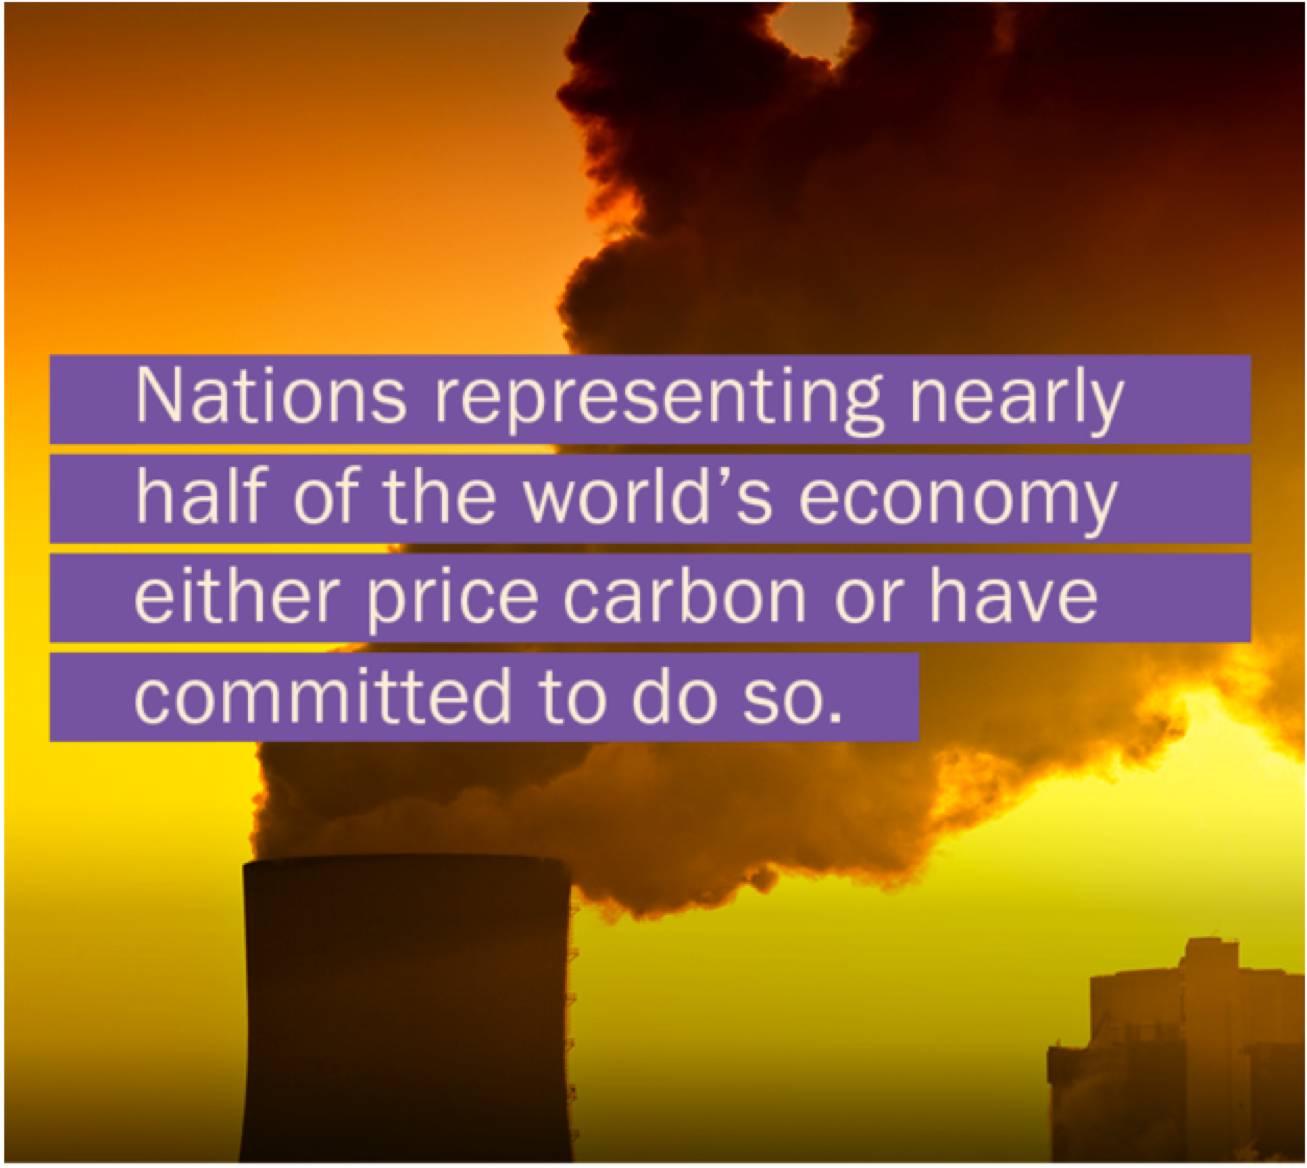 nations equal half price carbon